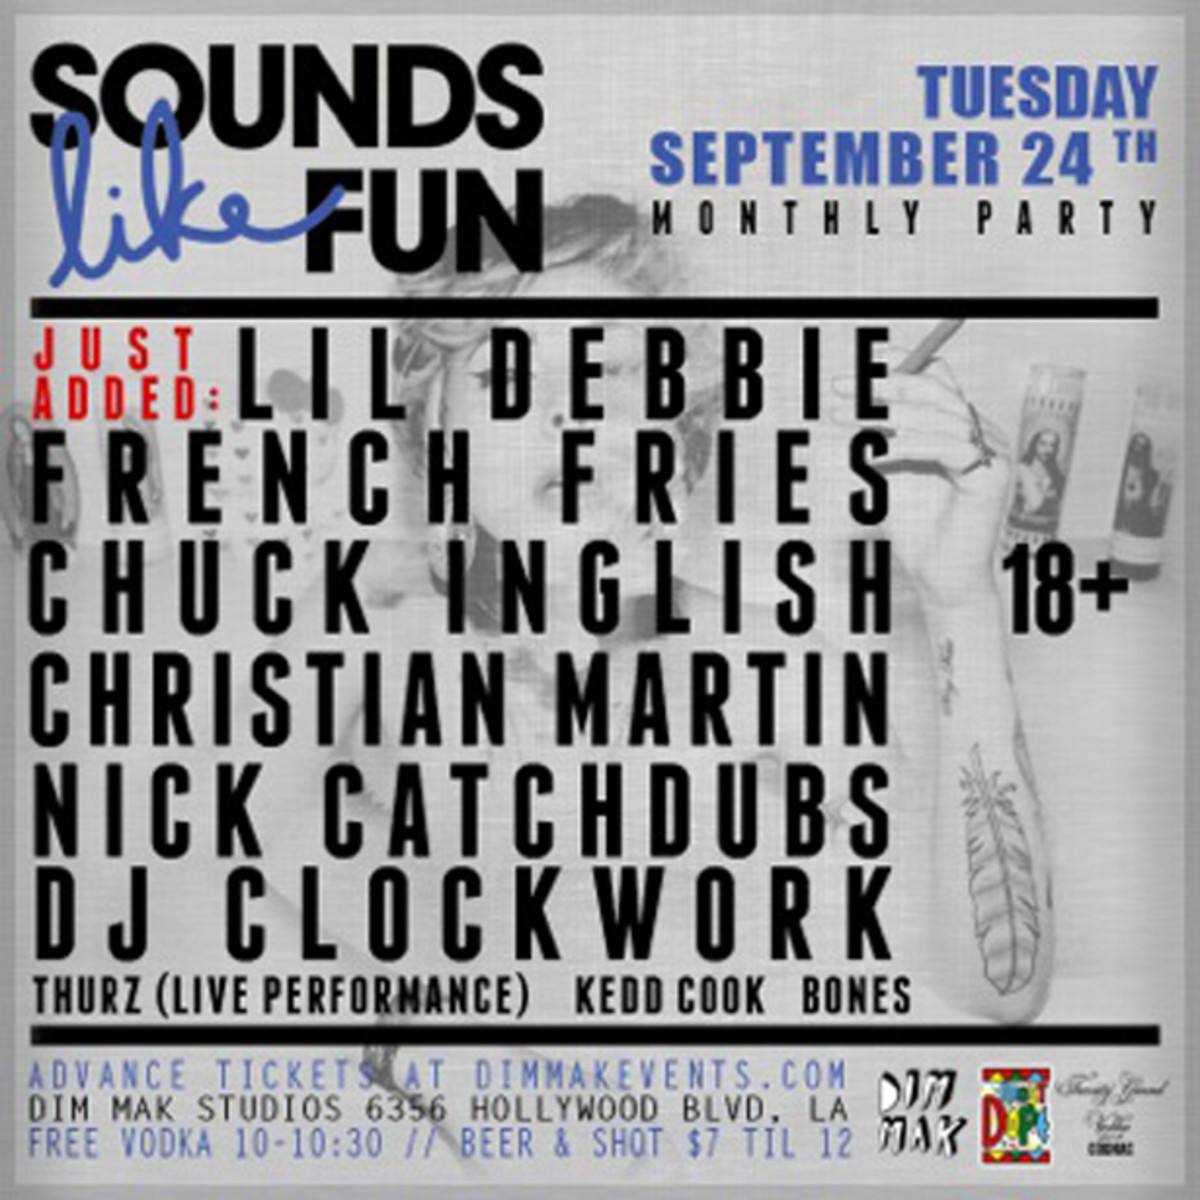 EDM Culture: Sounds Like Fun Takes Over Dim Mak Tuesdays Tonight With Dirtybird DJs, Clockwork, CatchDubs And More